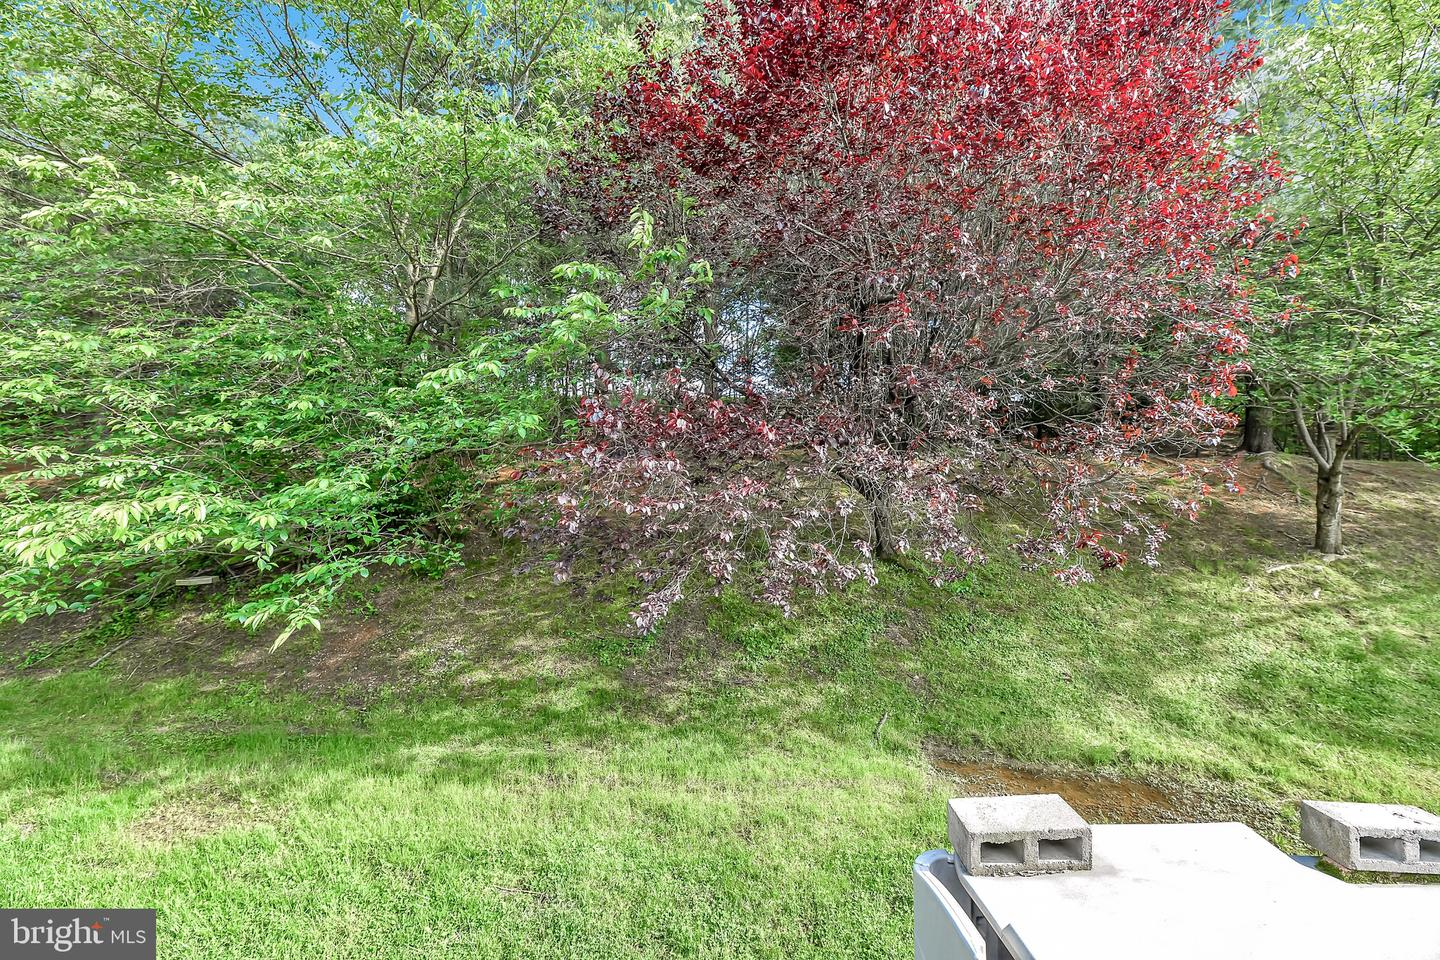 7995 Brightmeadow Court, Ellicott City, MD, 21043 - Real